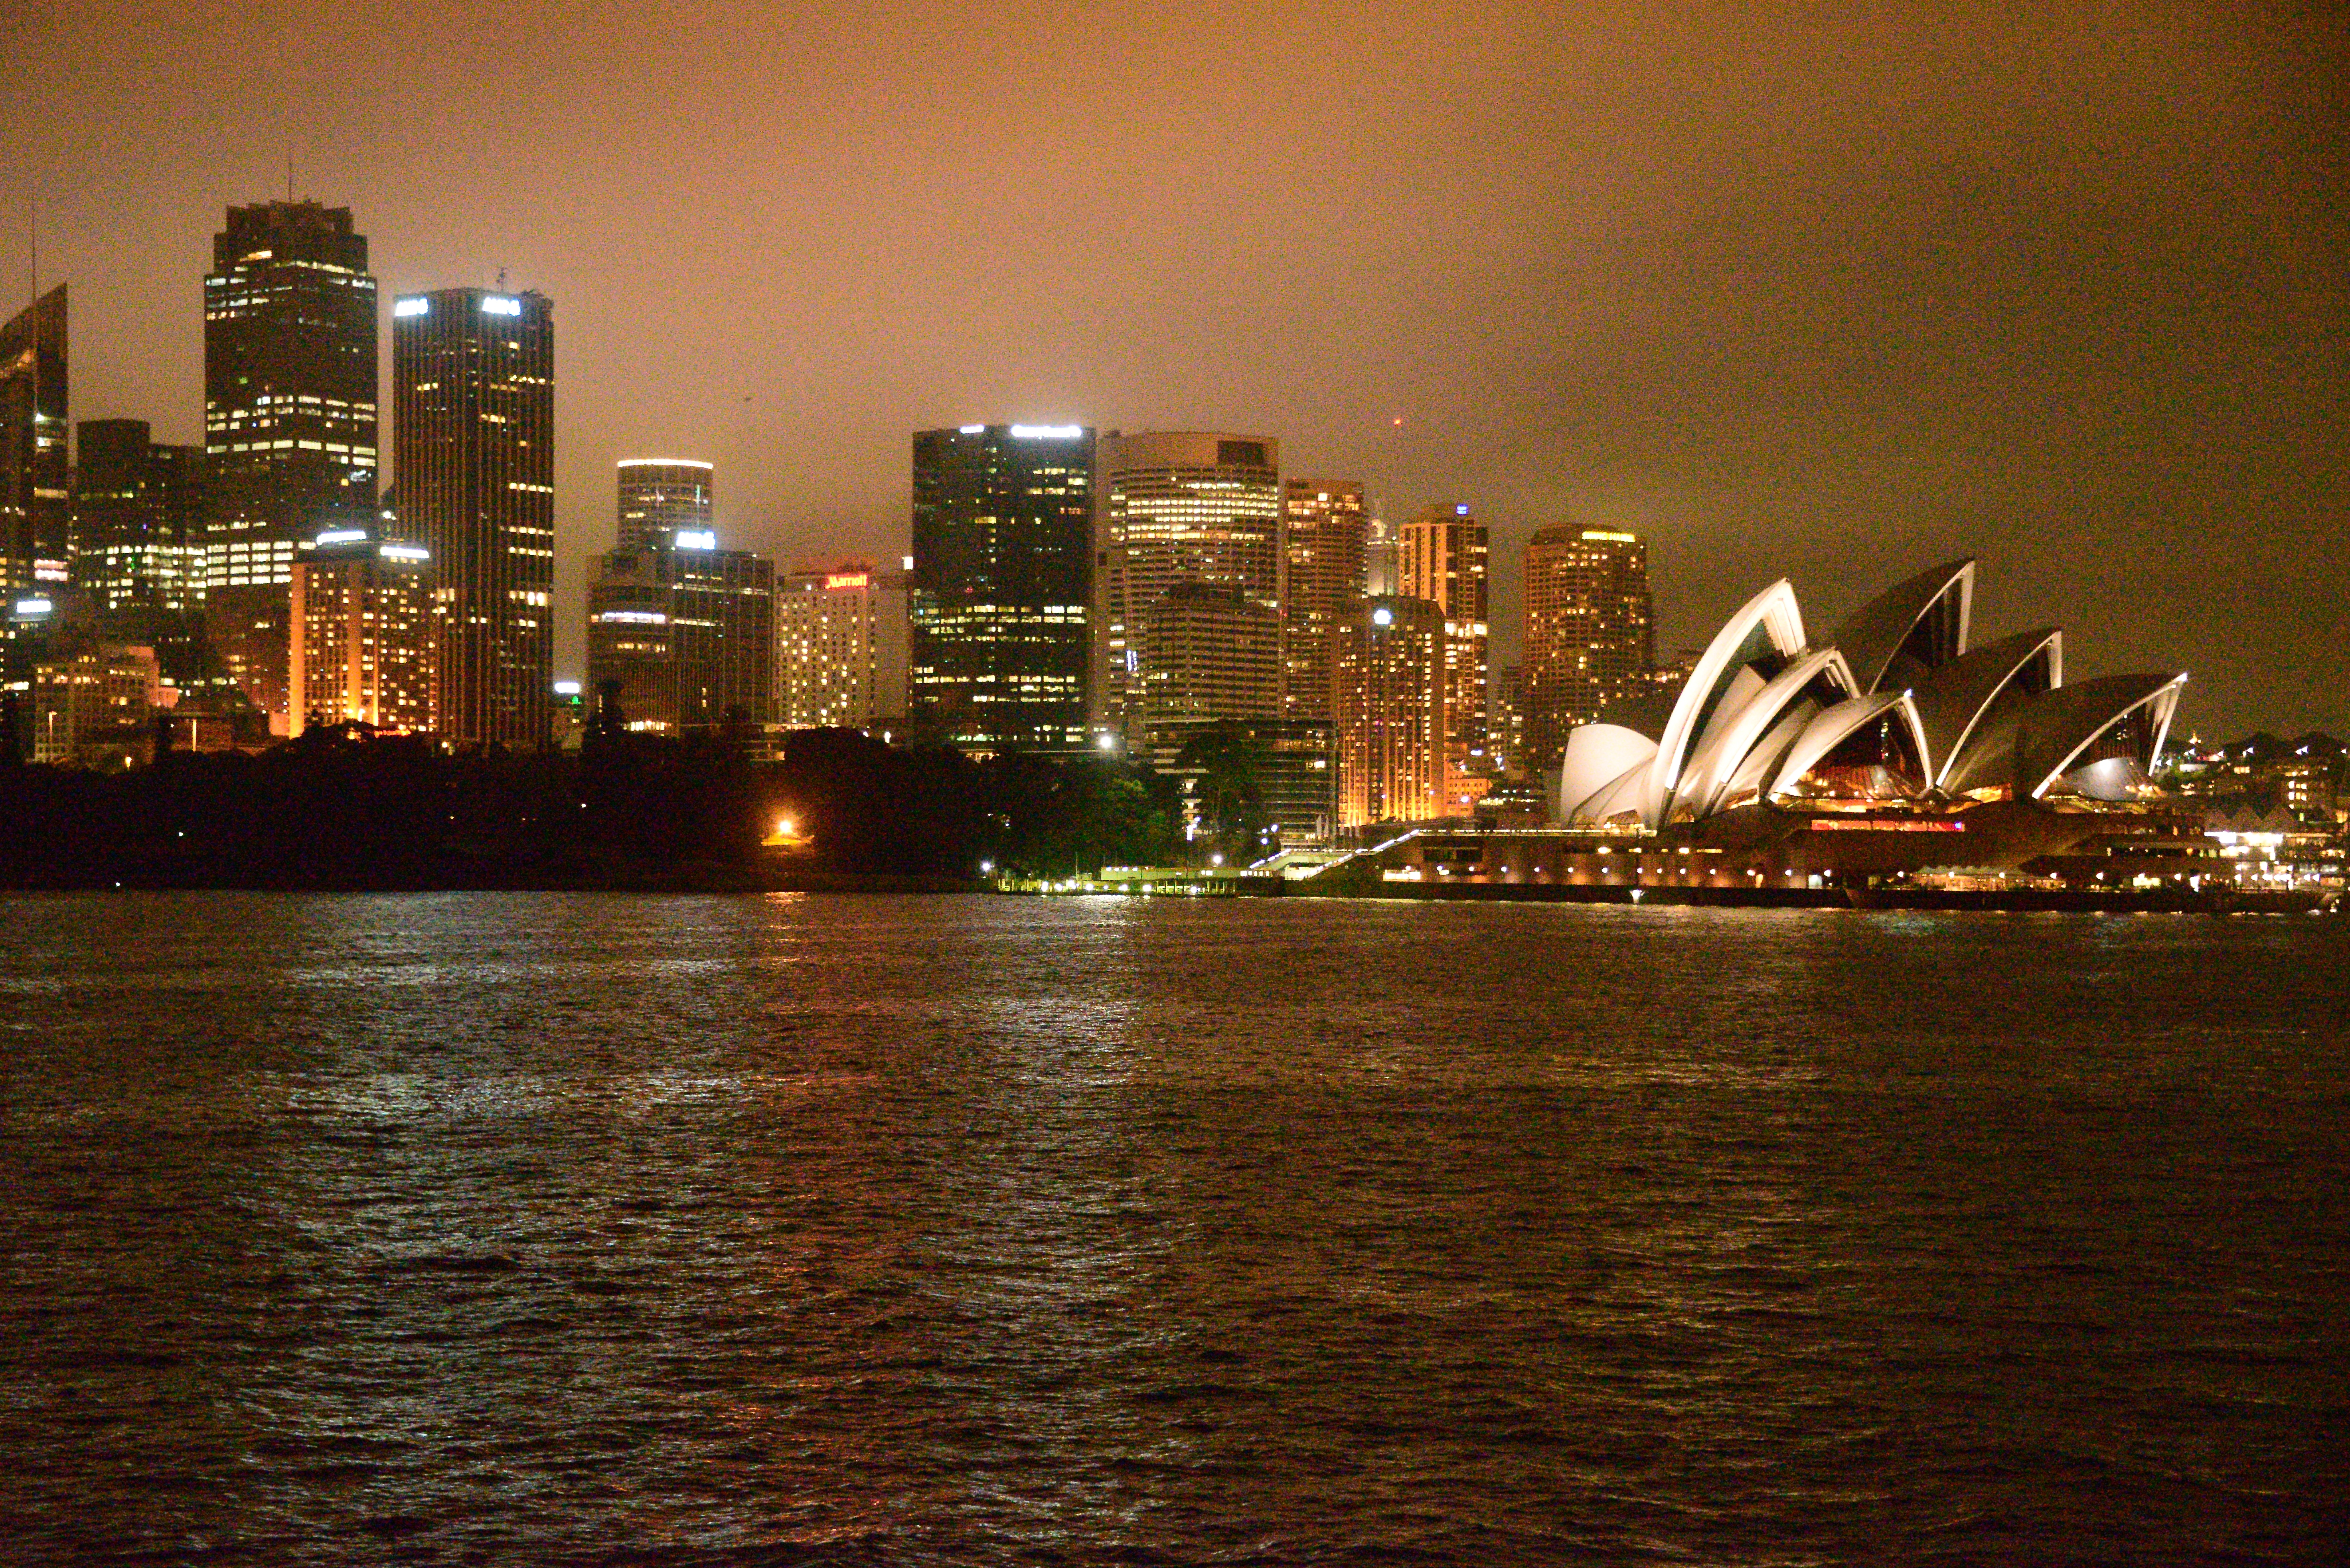 SYDNEY NIGHT - copie